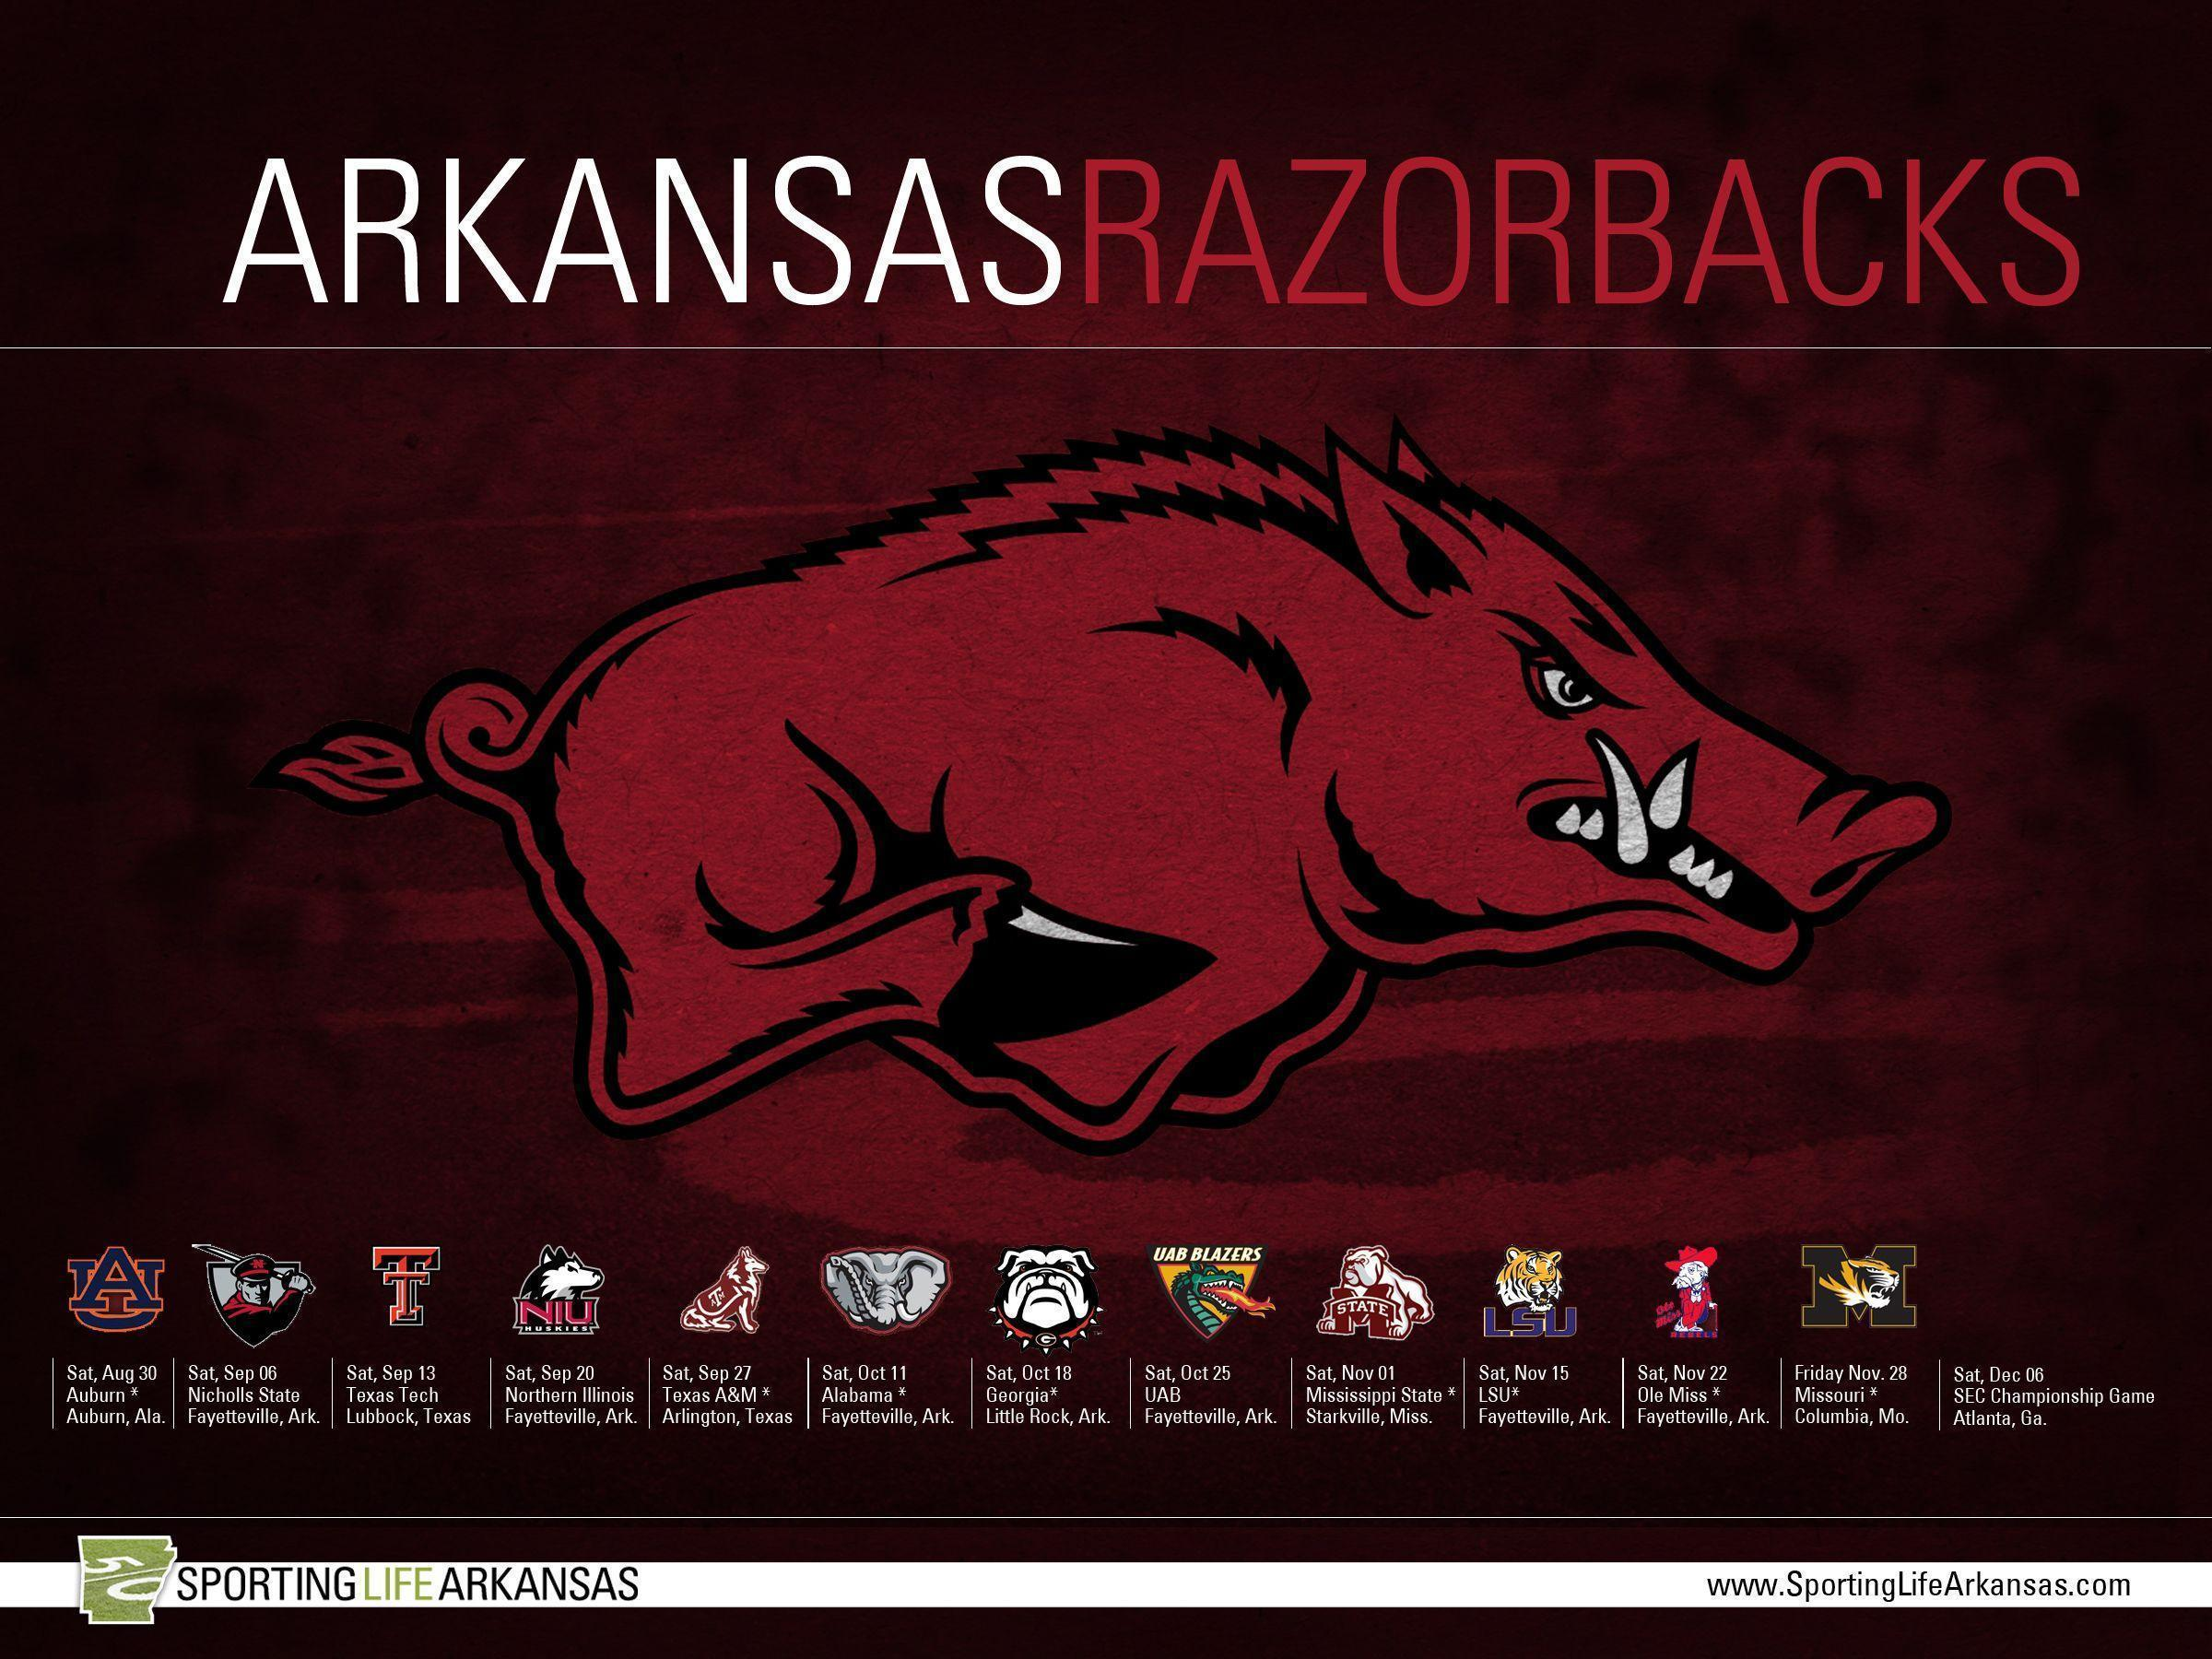 Arkansas Wallpapers, Browser Themes and More for Razorbacks Fans ...